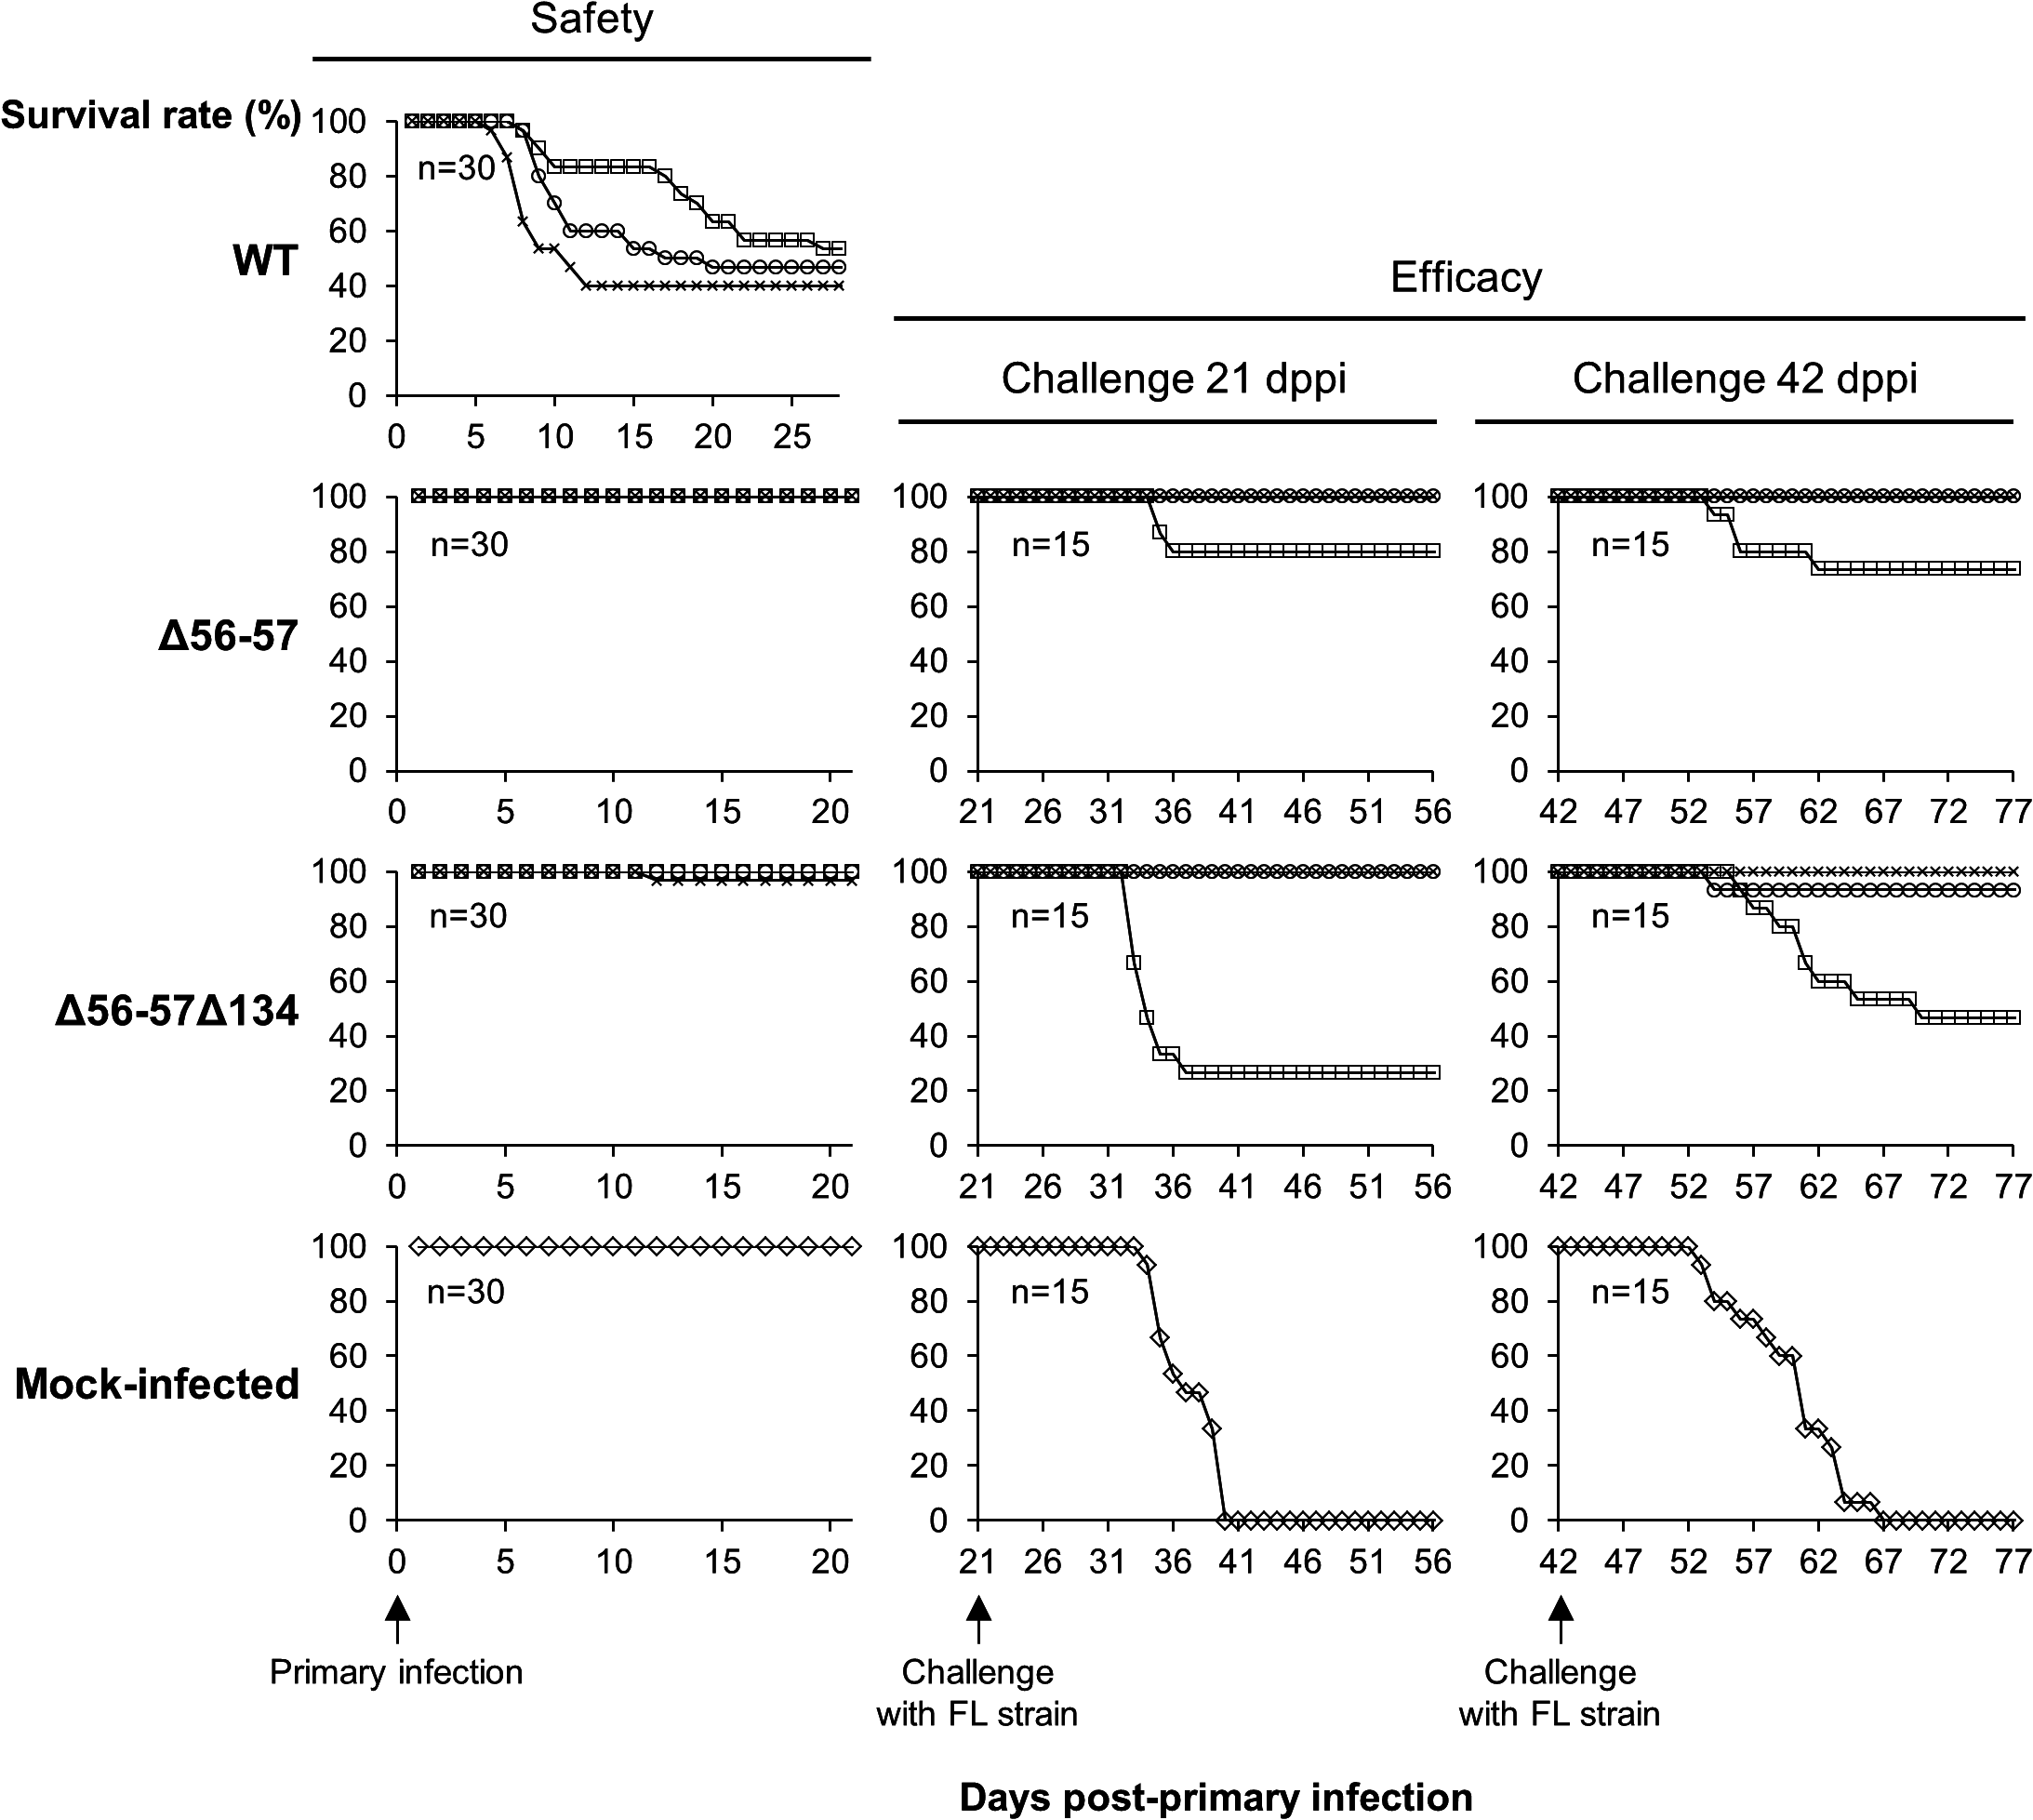 Safety-efficacy profile of double Δ56-57 and triple Δ56-57Δ134 deleted recombinants encoding a wild-type TK locus.